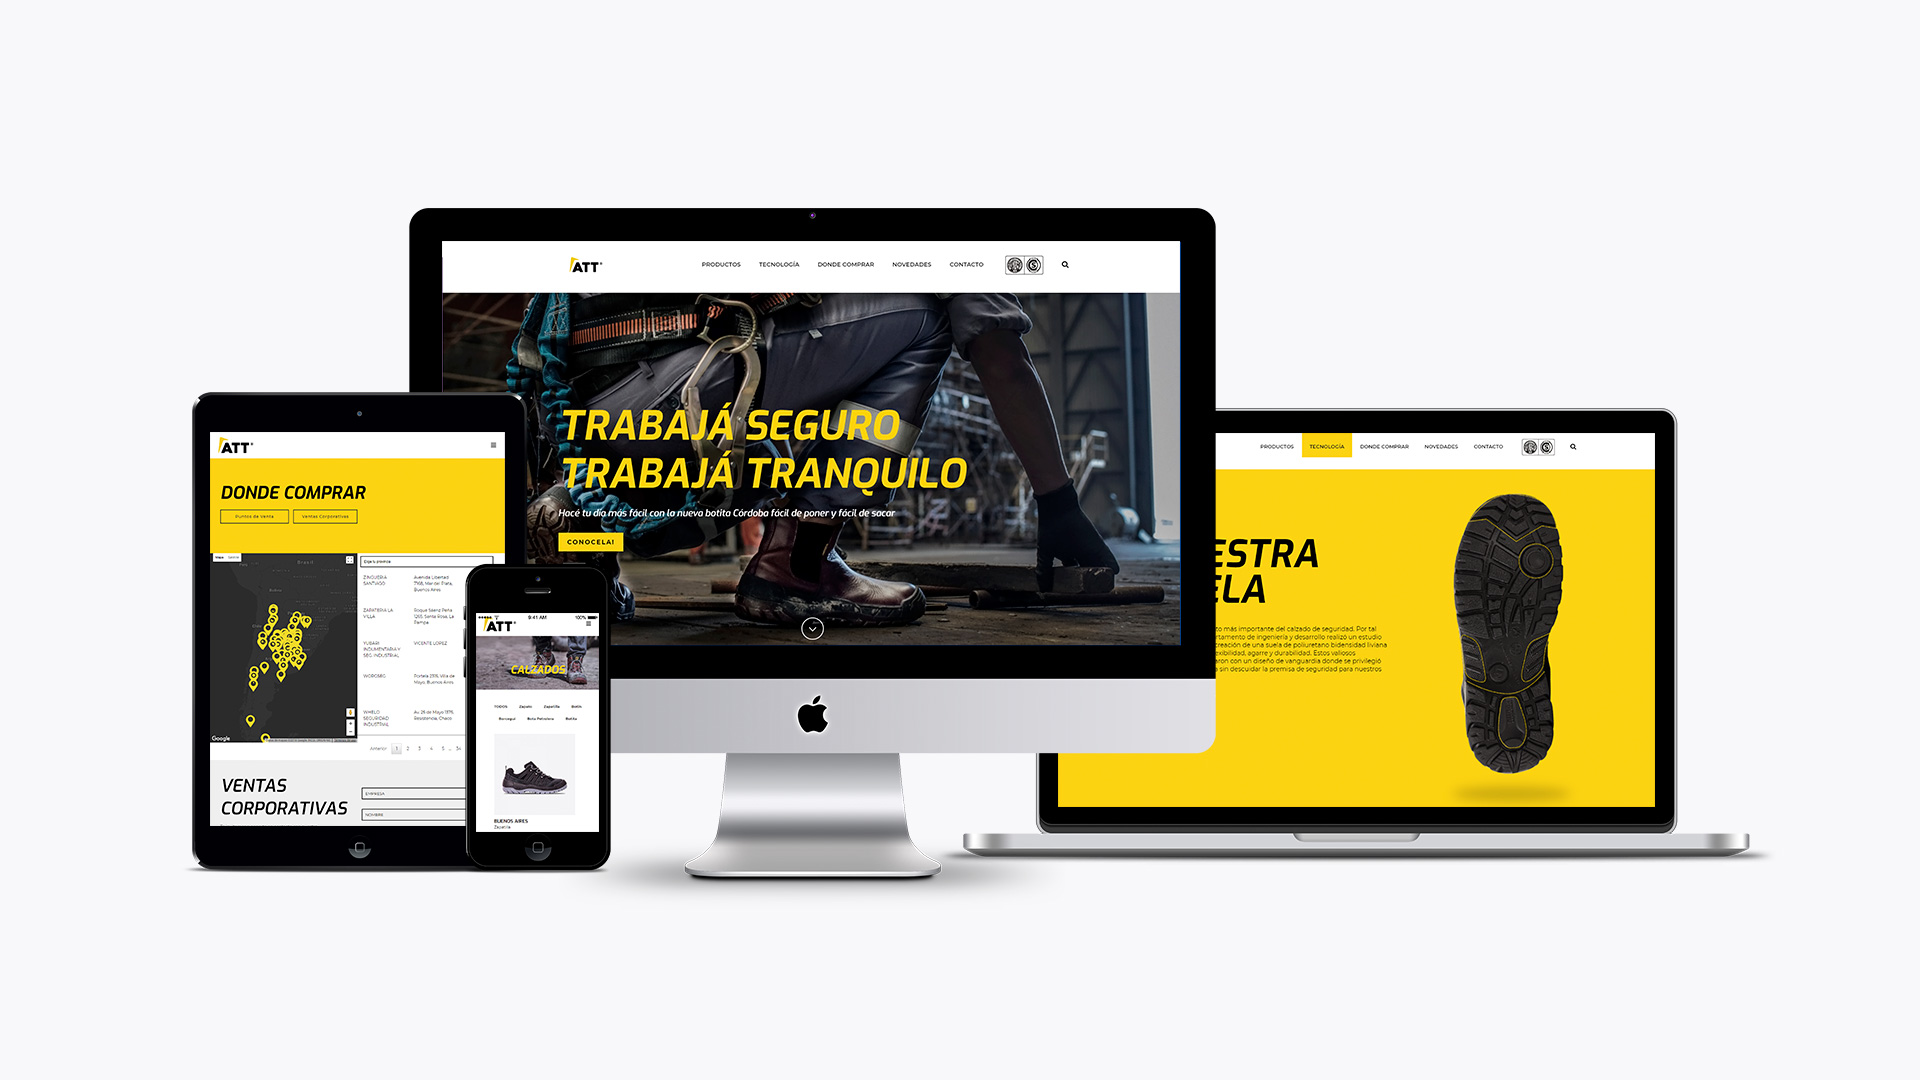 diseño sitio web att responsive imac ipad iphone macbook